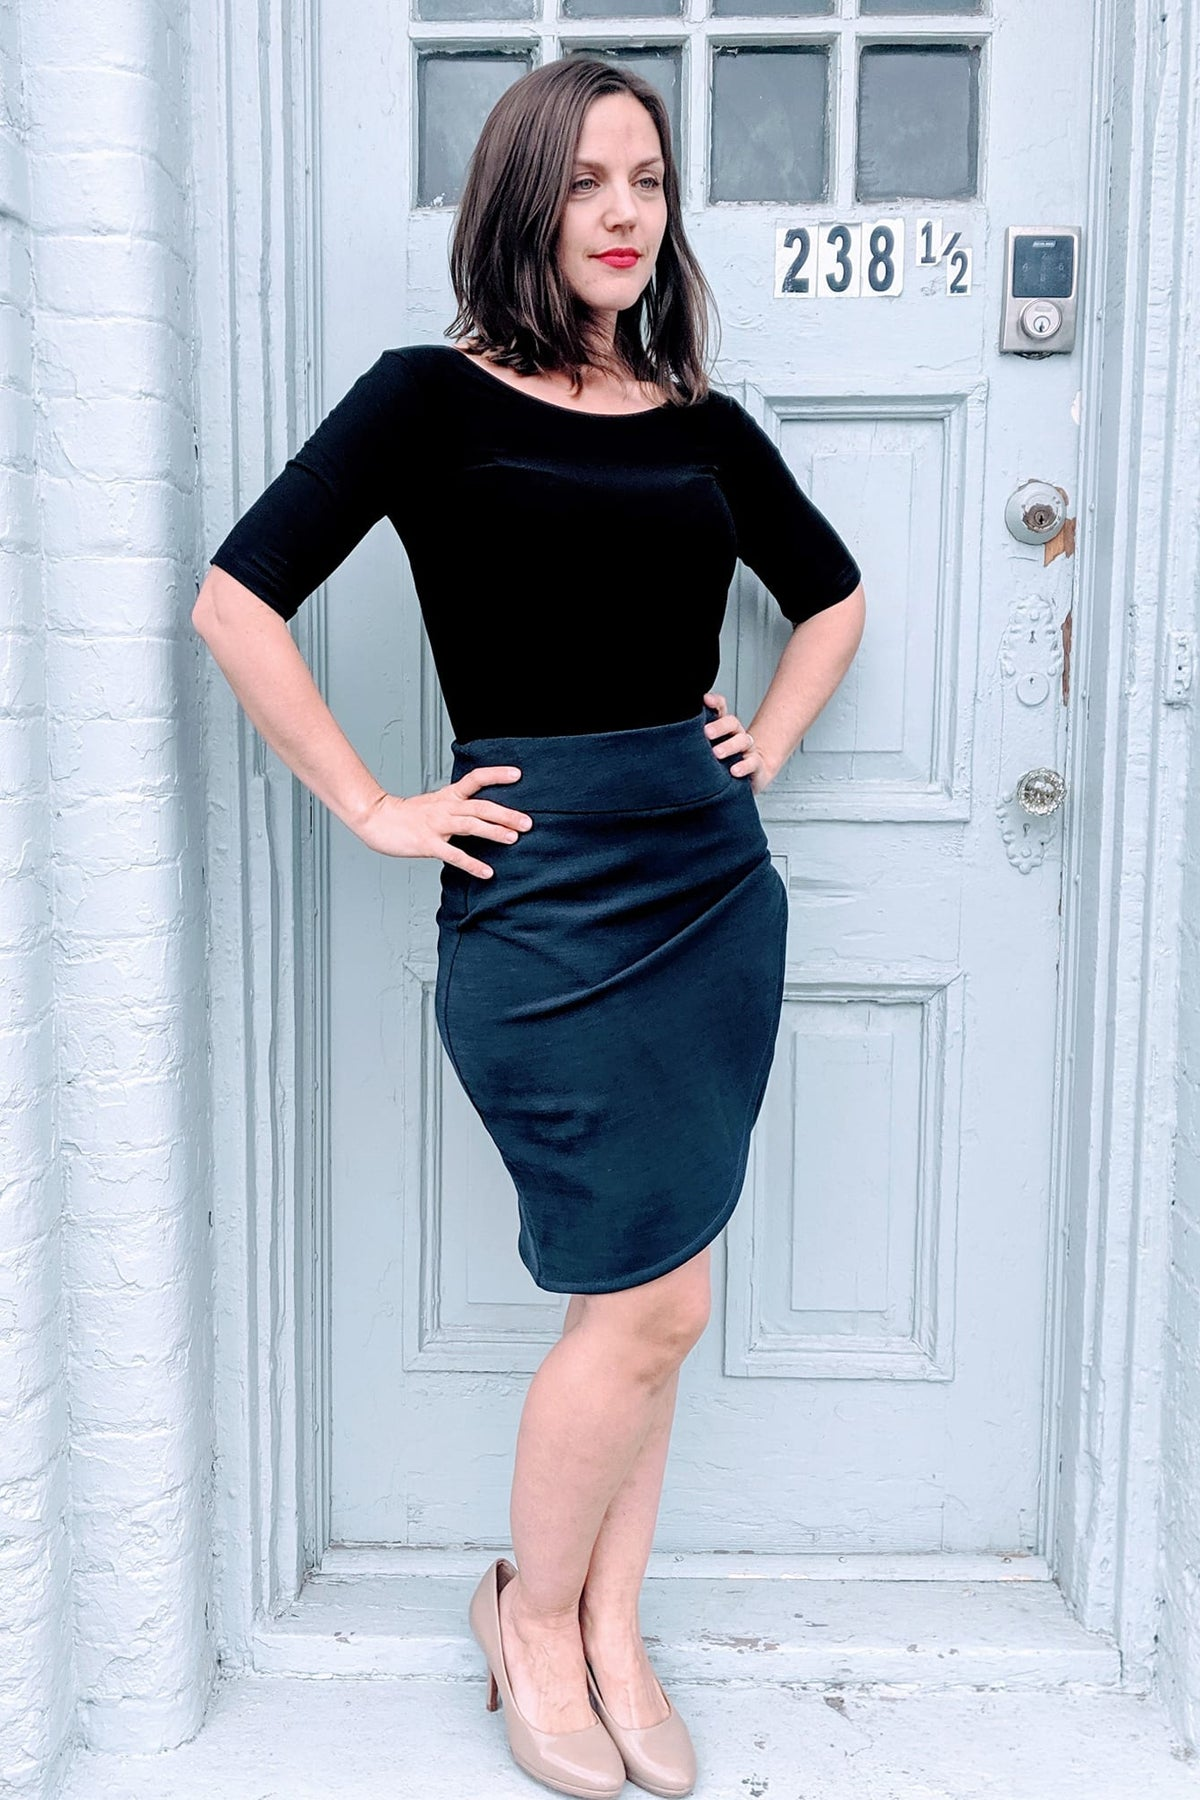 Yecine Skirt by Melow par Melissa Bolduc, Navy, pencil skirt, high waist, faux-wrap skirt, tulip hem, wide waistband, side zipper, sizes 4-14, made in Quebec